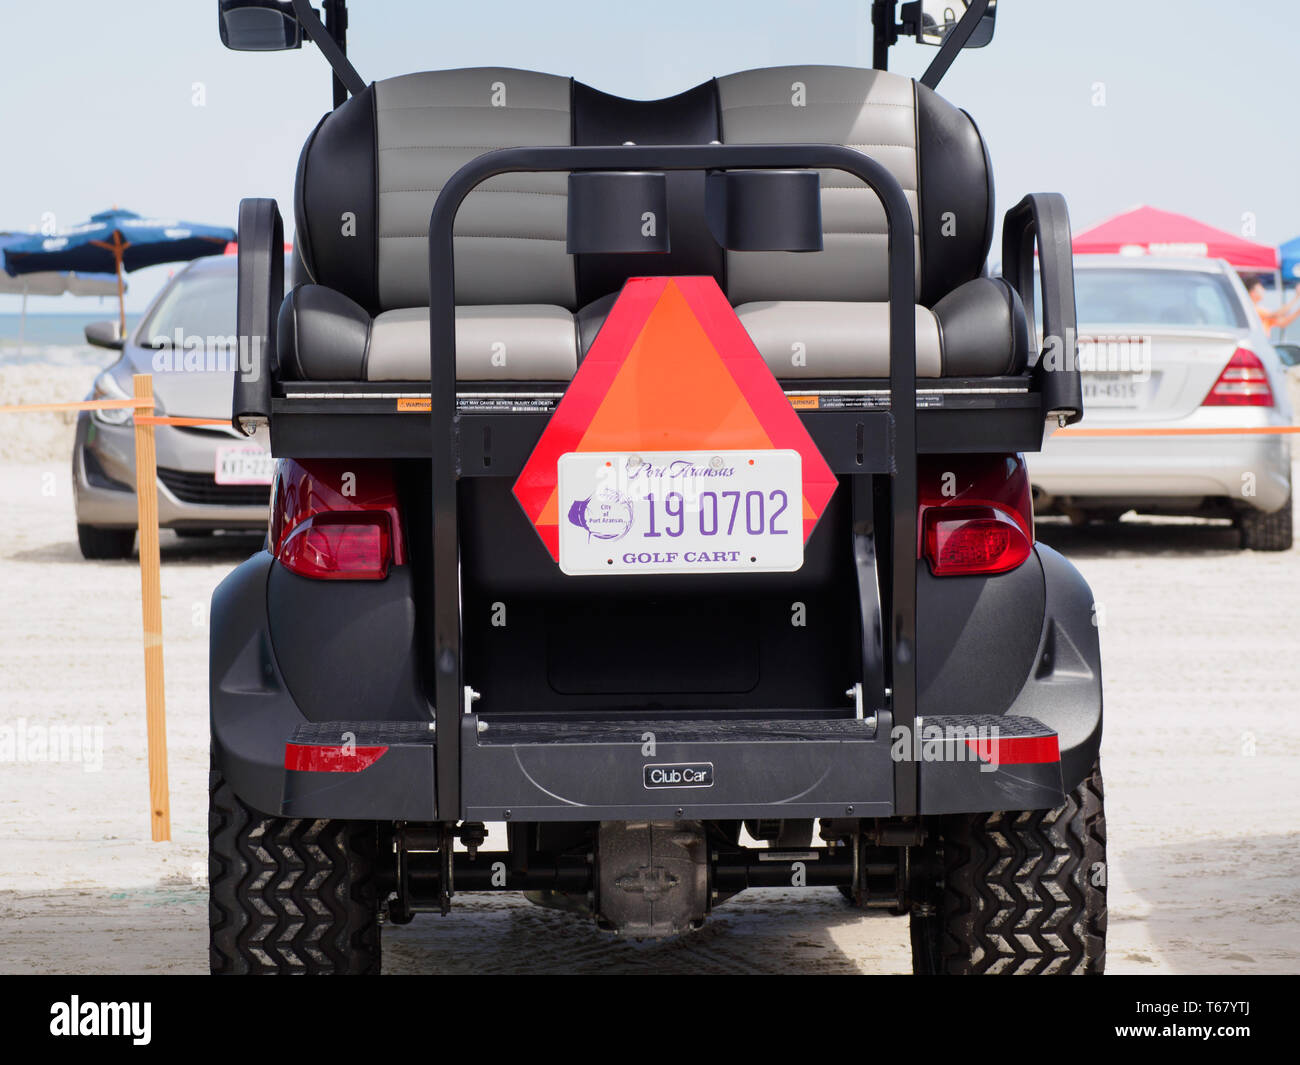 A golf cart with Port Aransas license plate sits in a beach parking lot at the 2019 Texas Sandfest in Port Aransas, Texas USA. - Stock Image